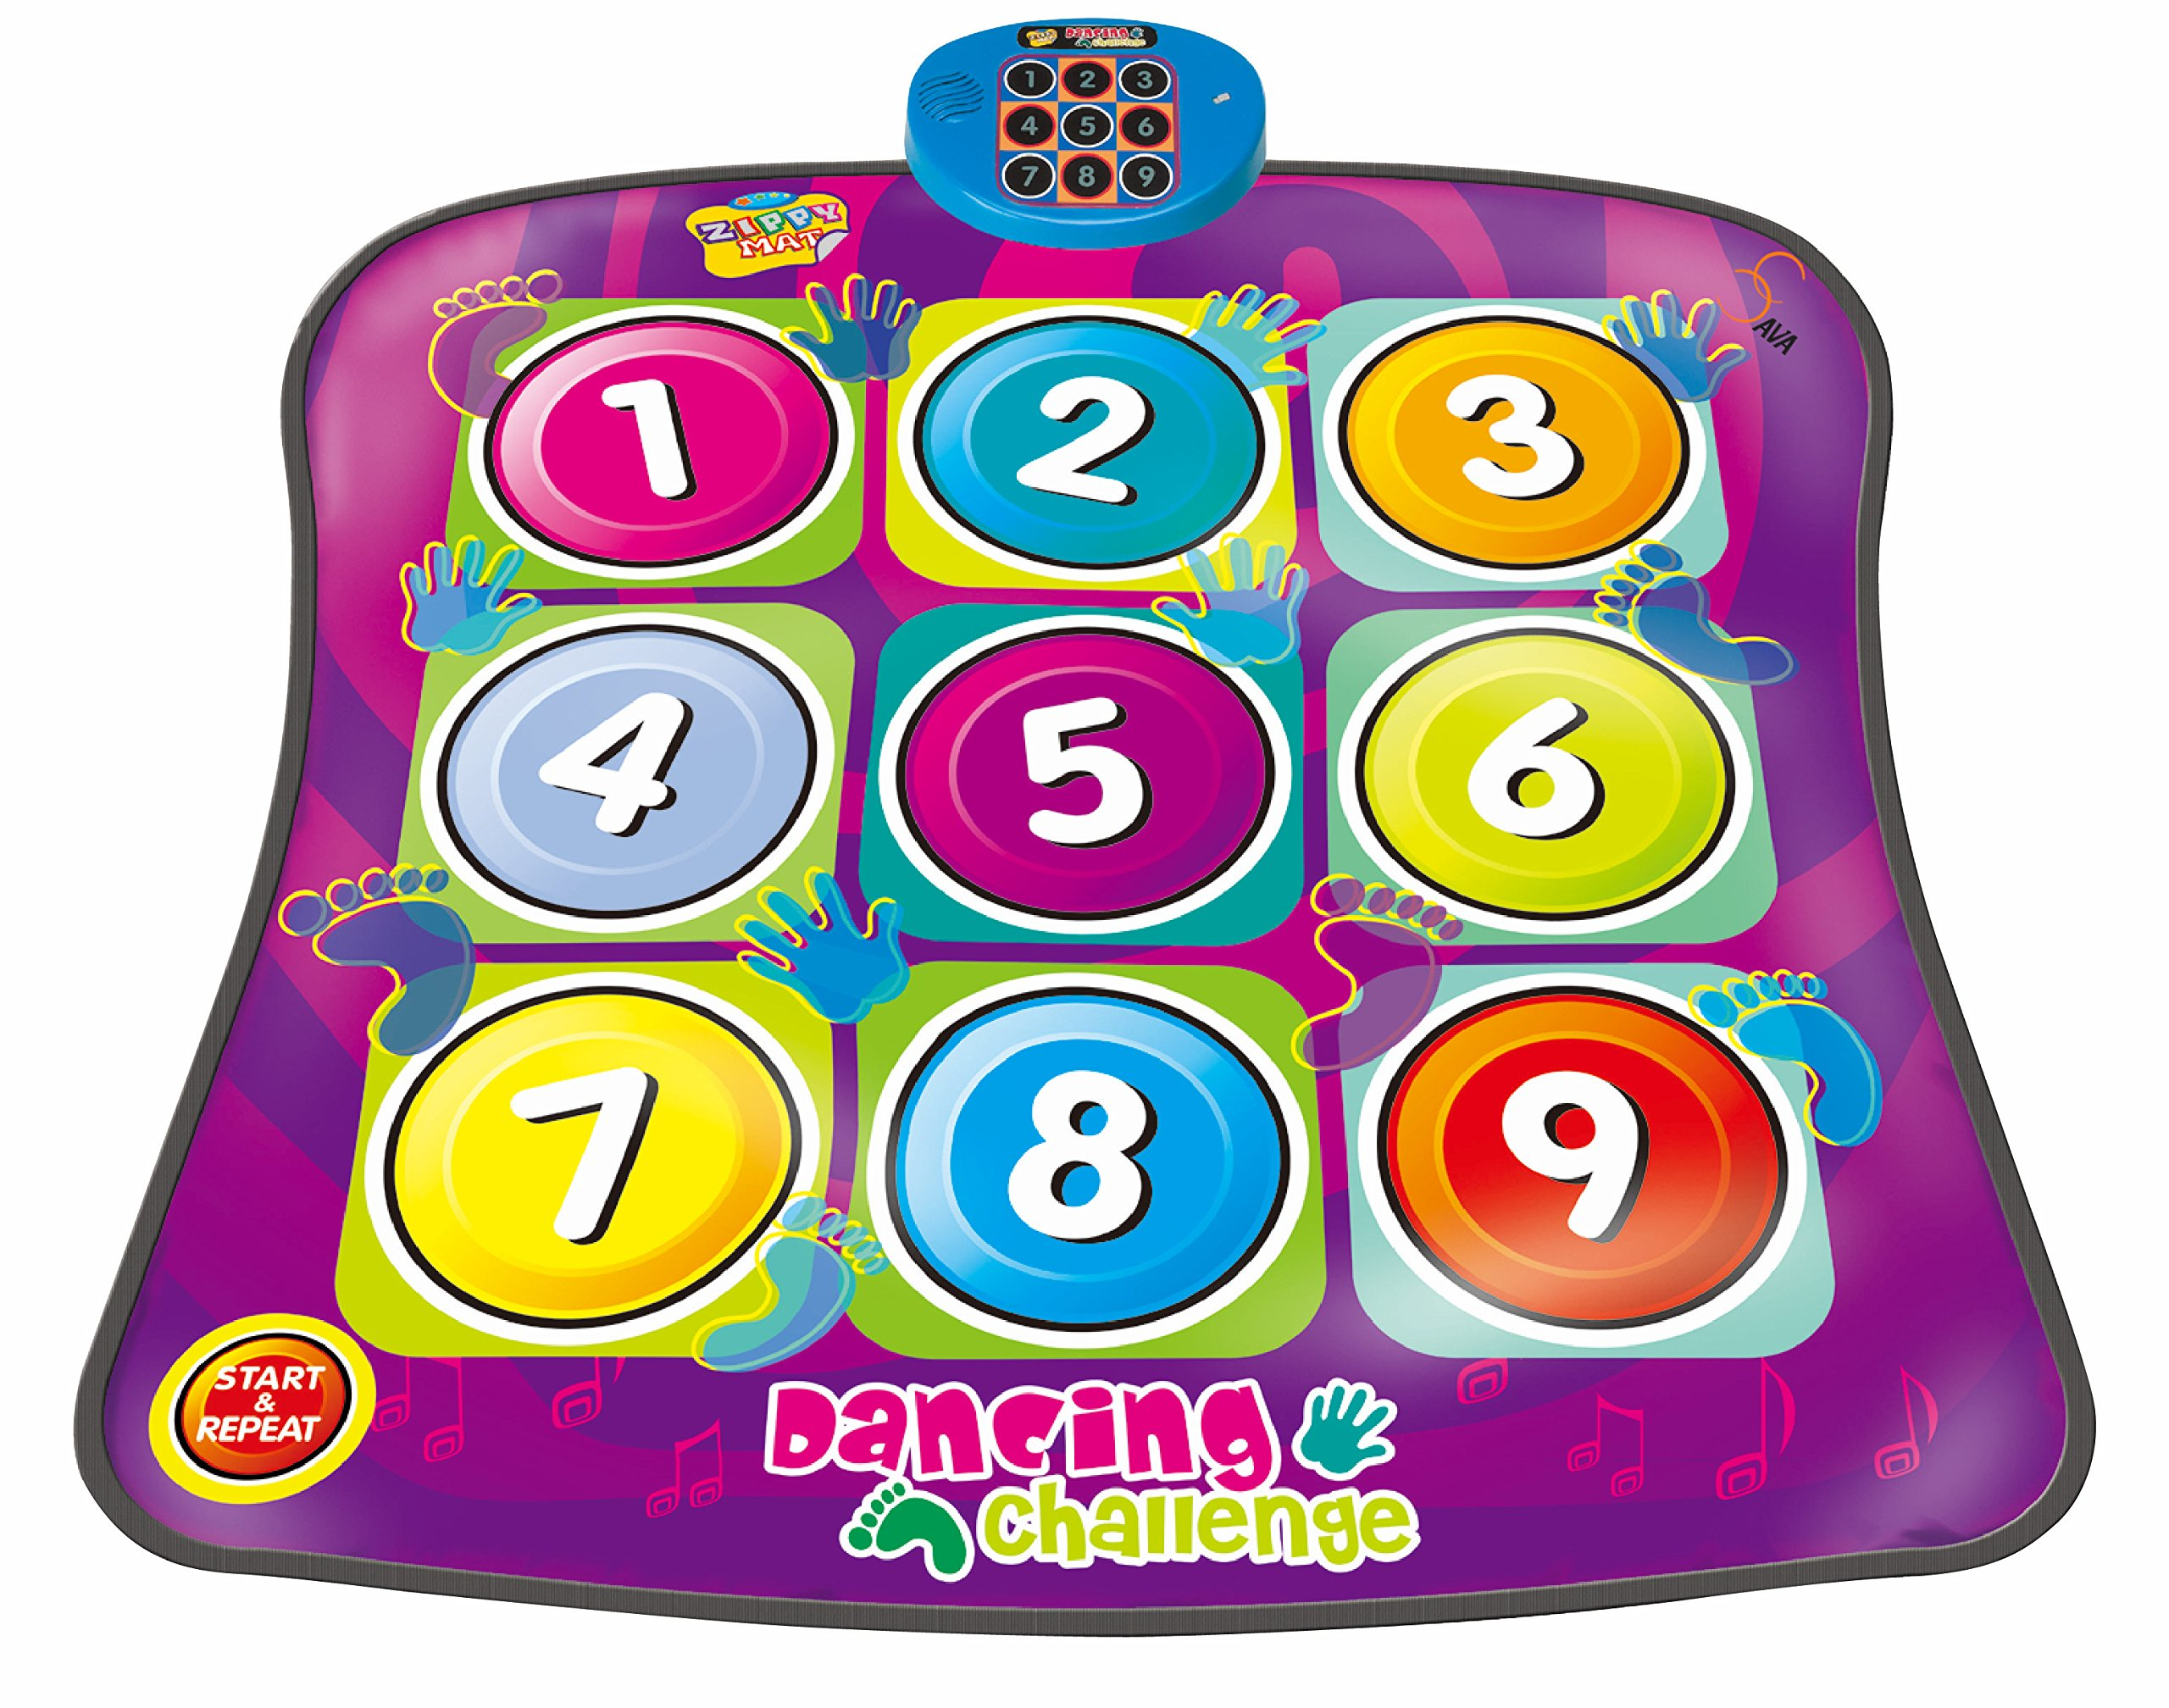 SAVA Touch Sensitive Dancing Challenge Rhythm and Beat Play Mat - Ages 3+